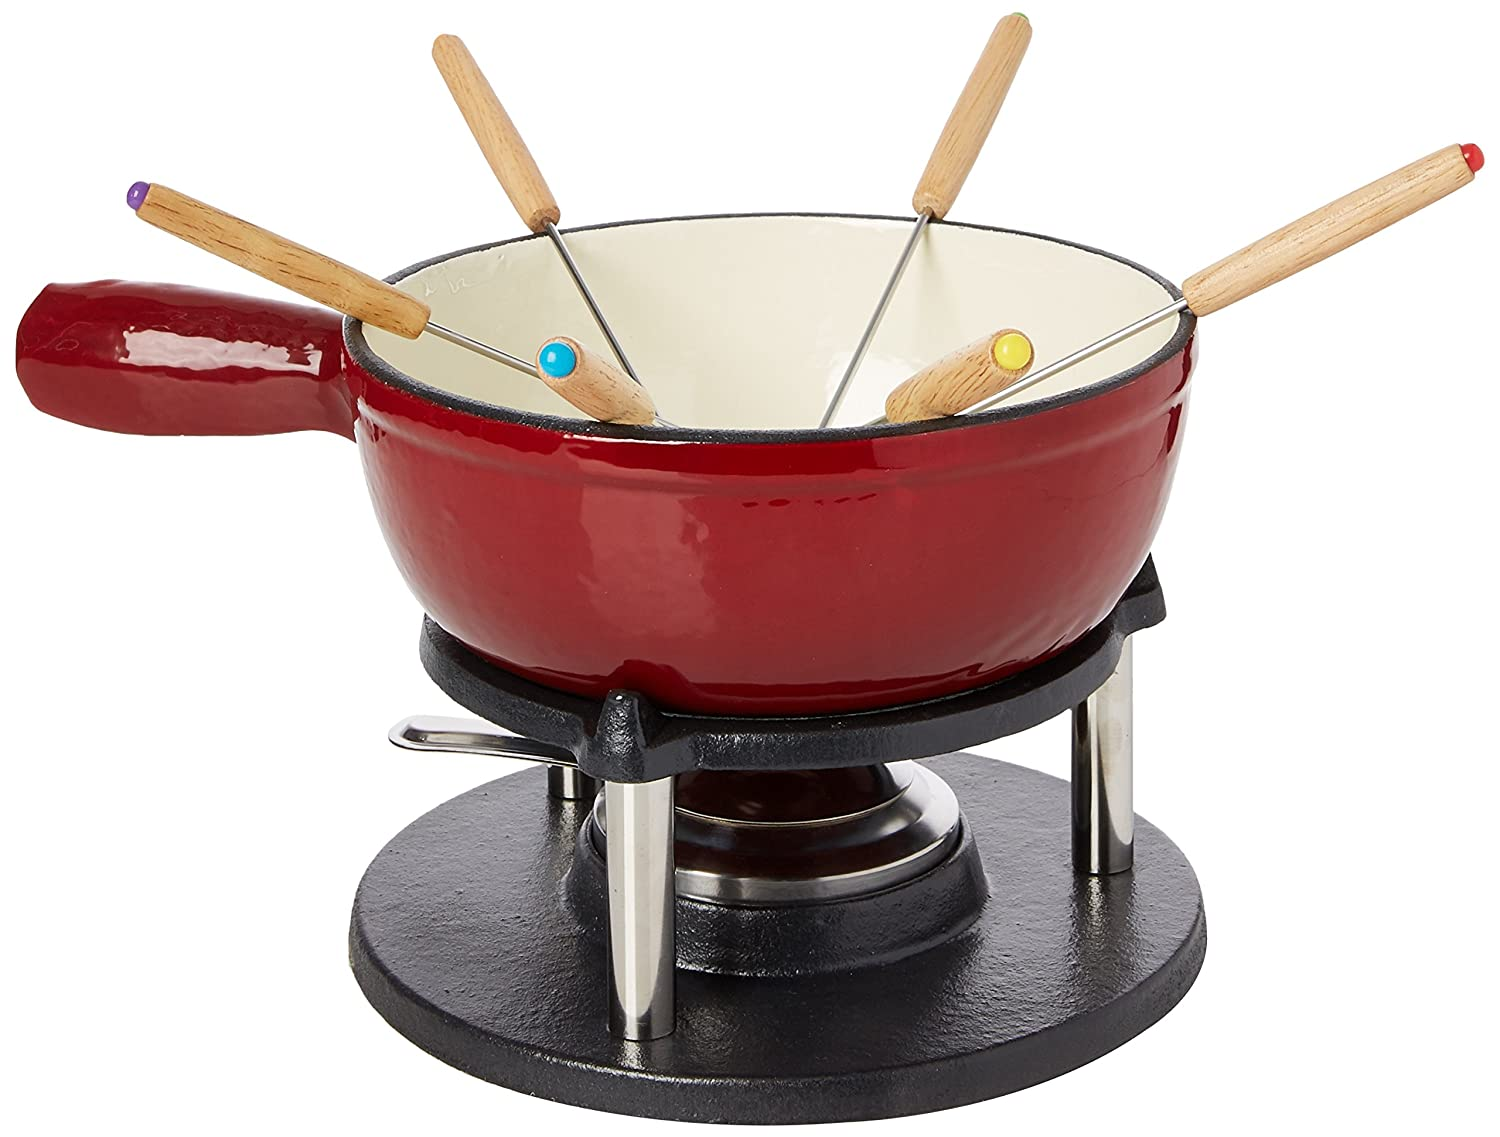 Baumalu - 385052 - Cast iron cheese fondue set 6 persons red color